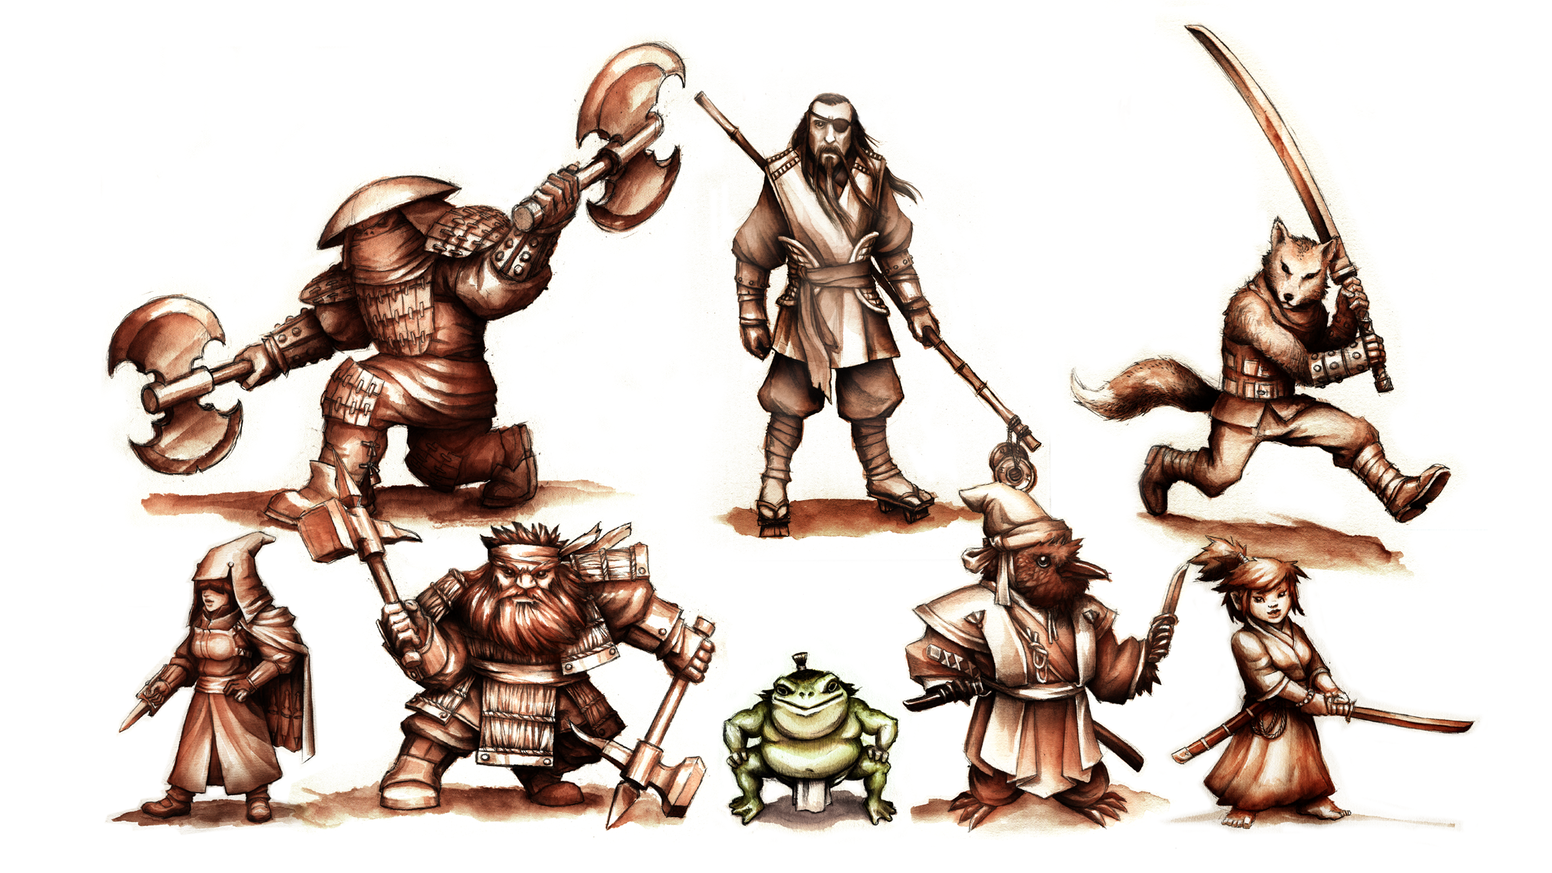 We're producing a diverse group of 28mm miniature heroes for role-playing, dungeon-crawling, dragon-slaying, and tabletop wargaming.